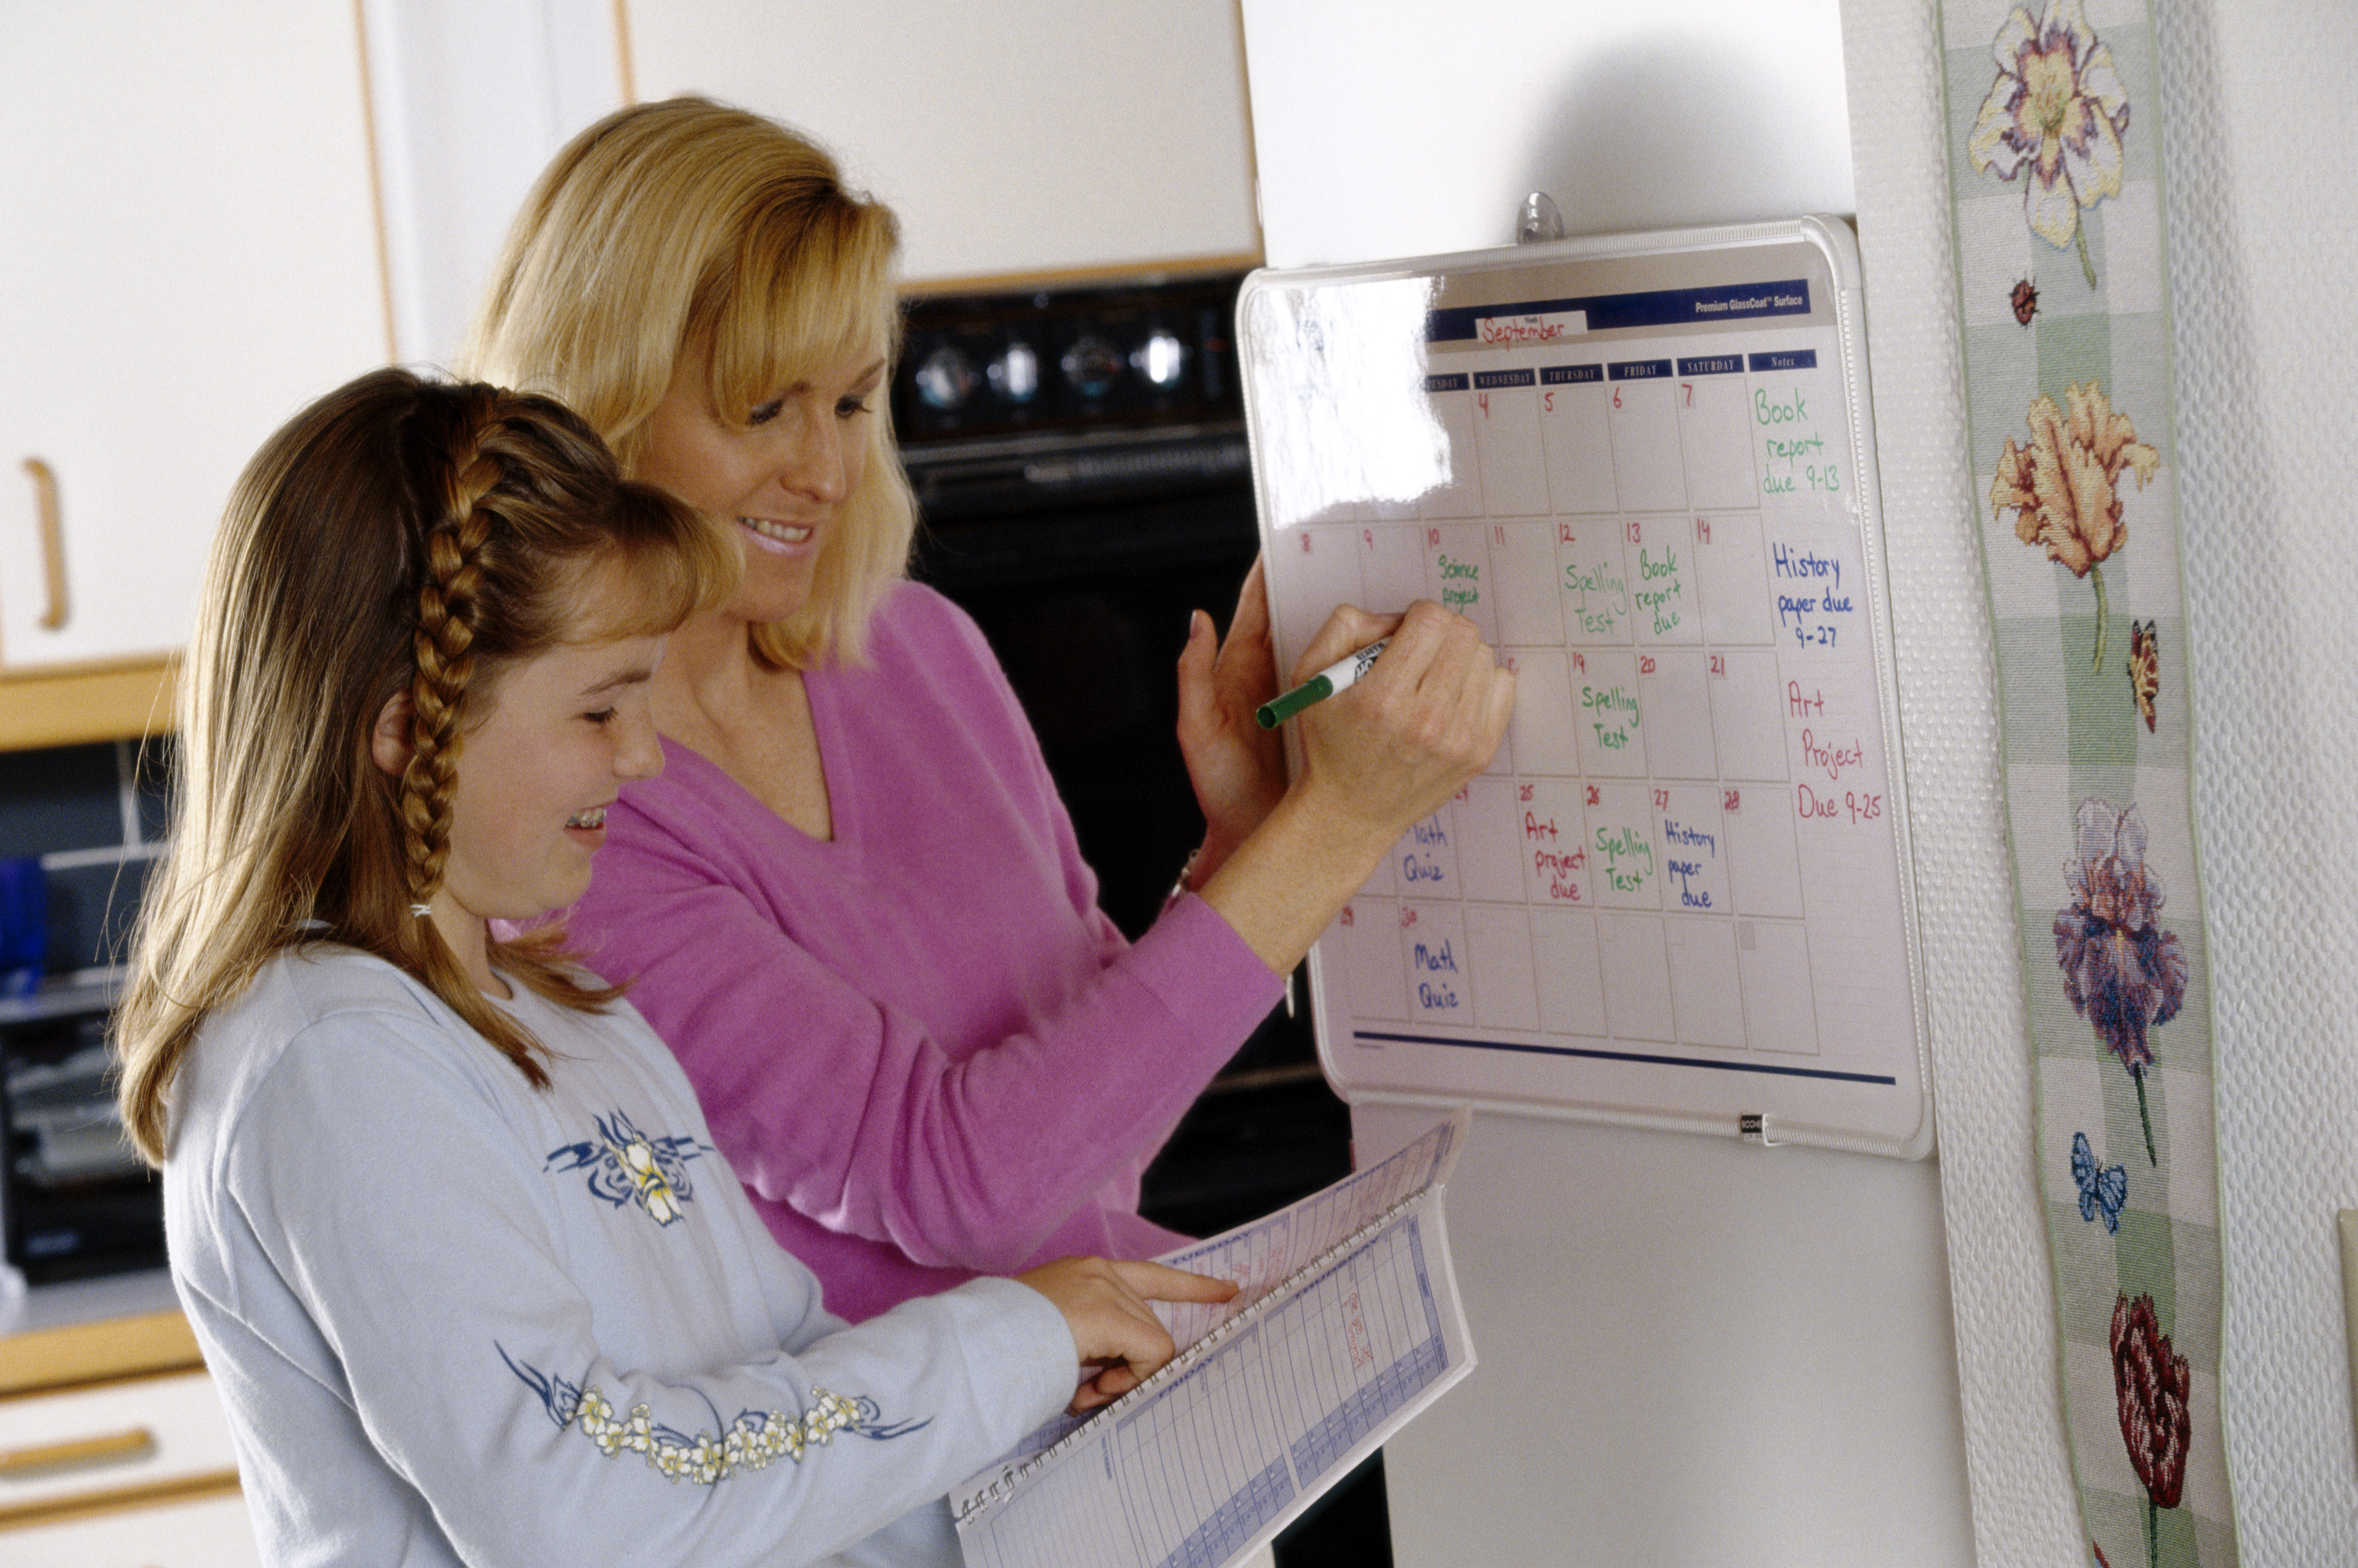 Mom and daughter writing on calendar